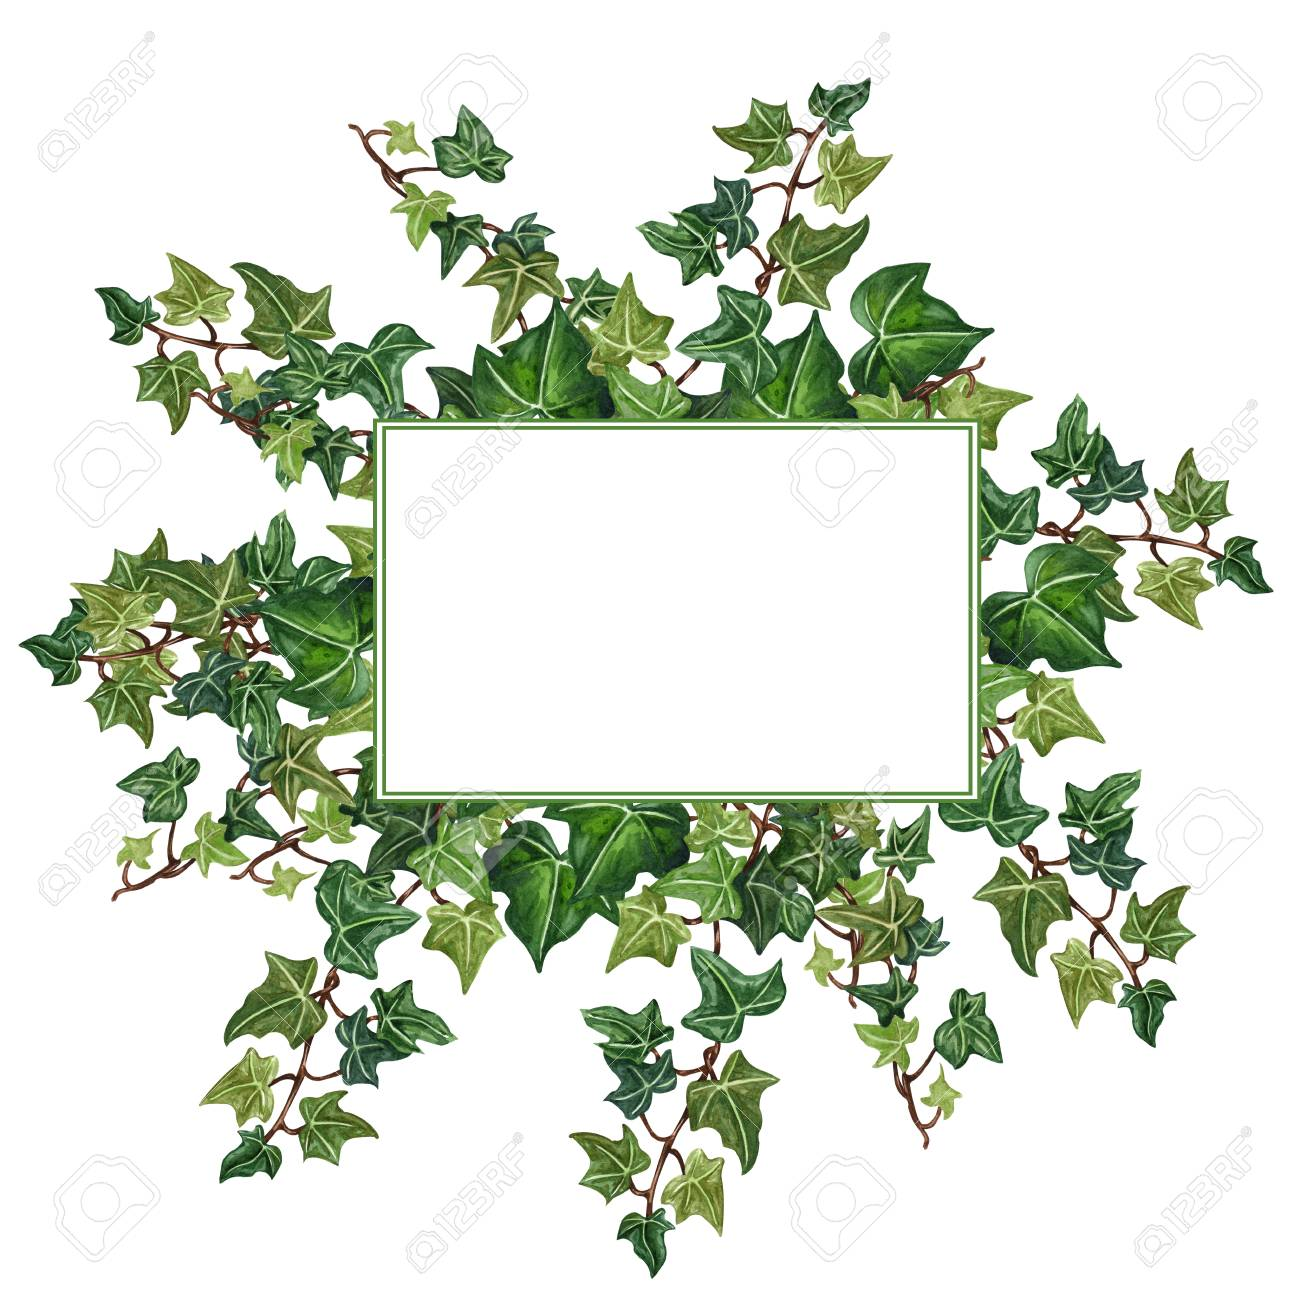 Watercolor Botanical Ivy Illustration Floral Frame From Ivy Stock Photo Picture And Royalty Free Image Image 122321243